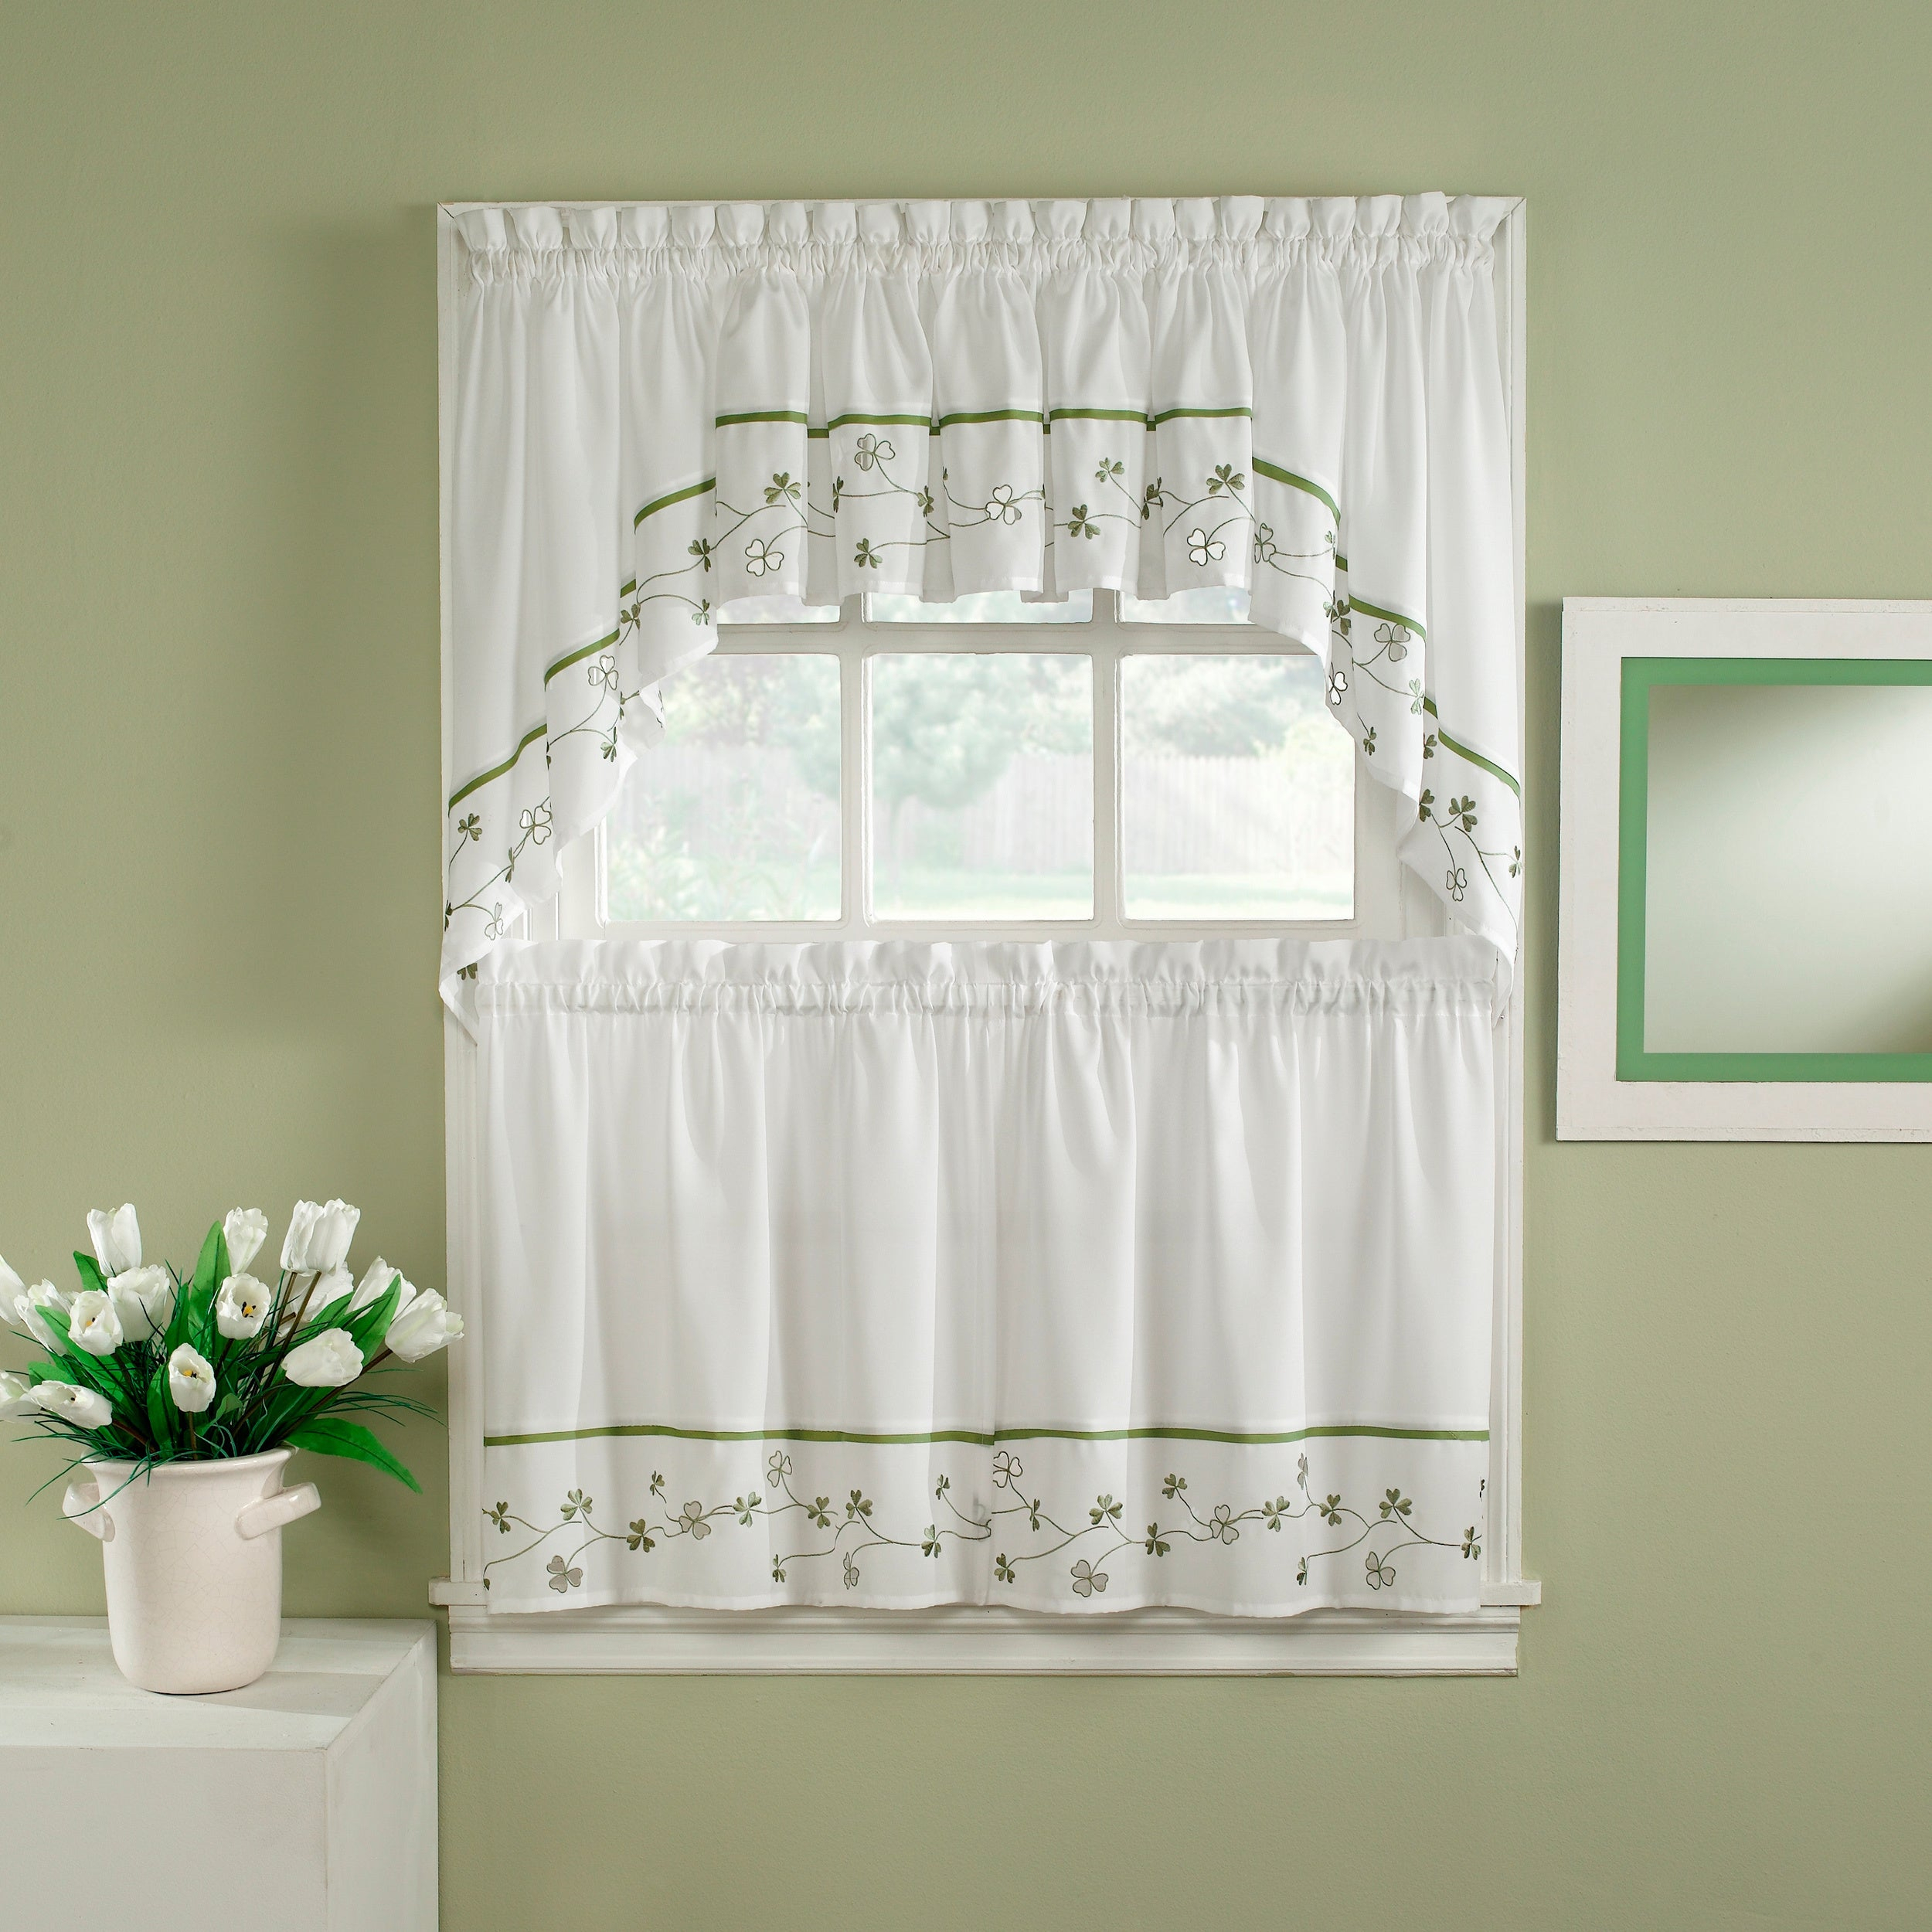 Clover Green/ White 5 Piece Curtain Tier And Swag Set Intended For Abby Embroidered 5 Piece Curtain Tier And Swag Sets (Image 7 of 20)